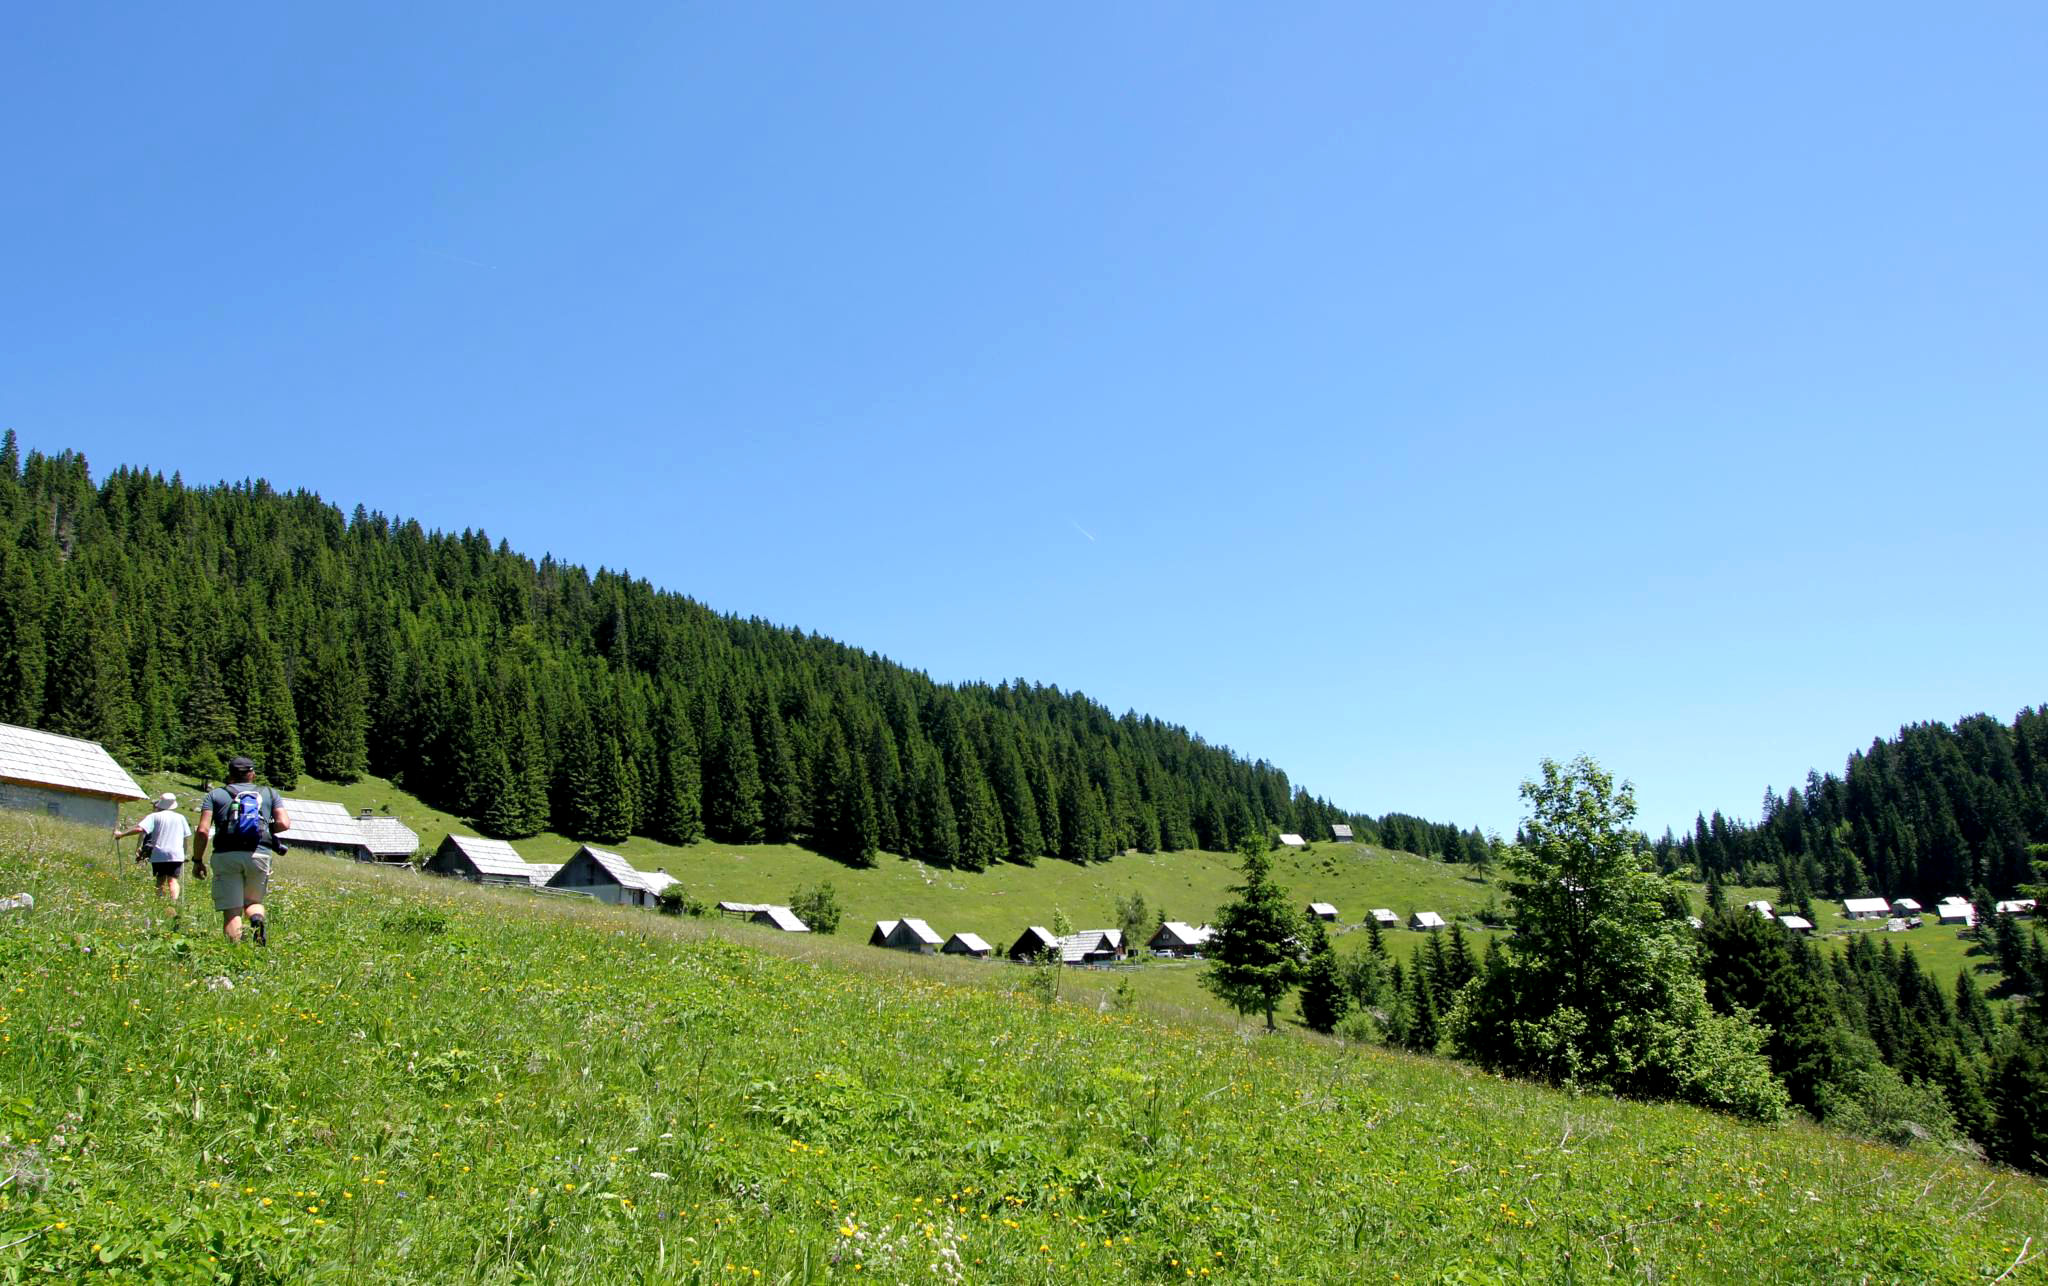 Traditional Slovenian shepherds' huts of the Pokljuka region in the Julian Alps, Slovenia